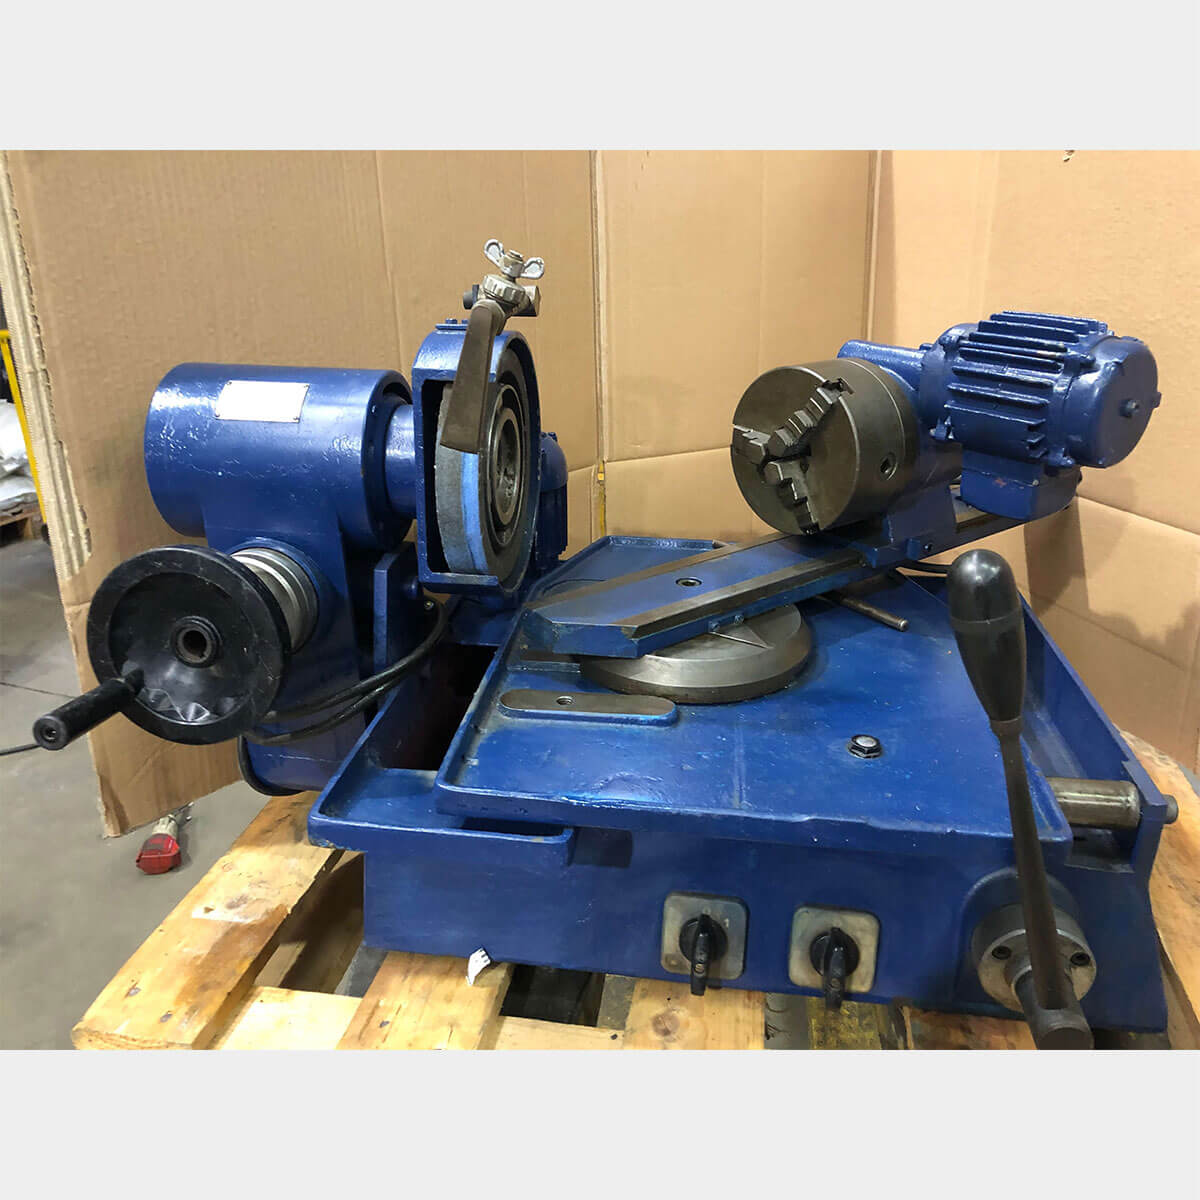 MU782 - PEG RV 550 Used Valve Grinding Machine